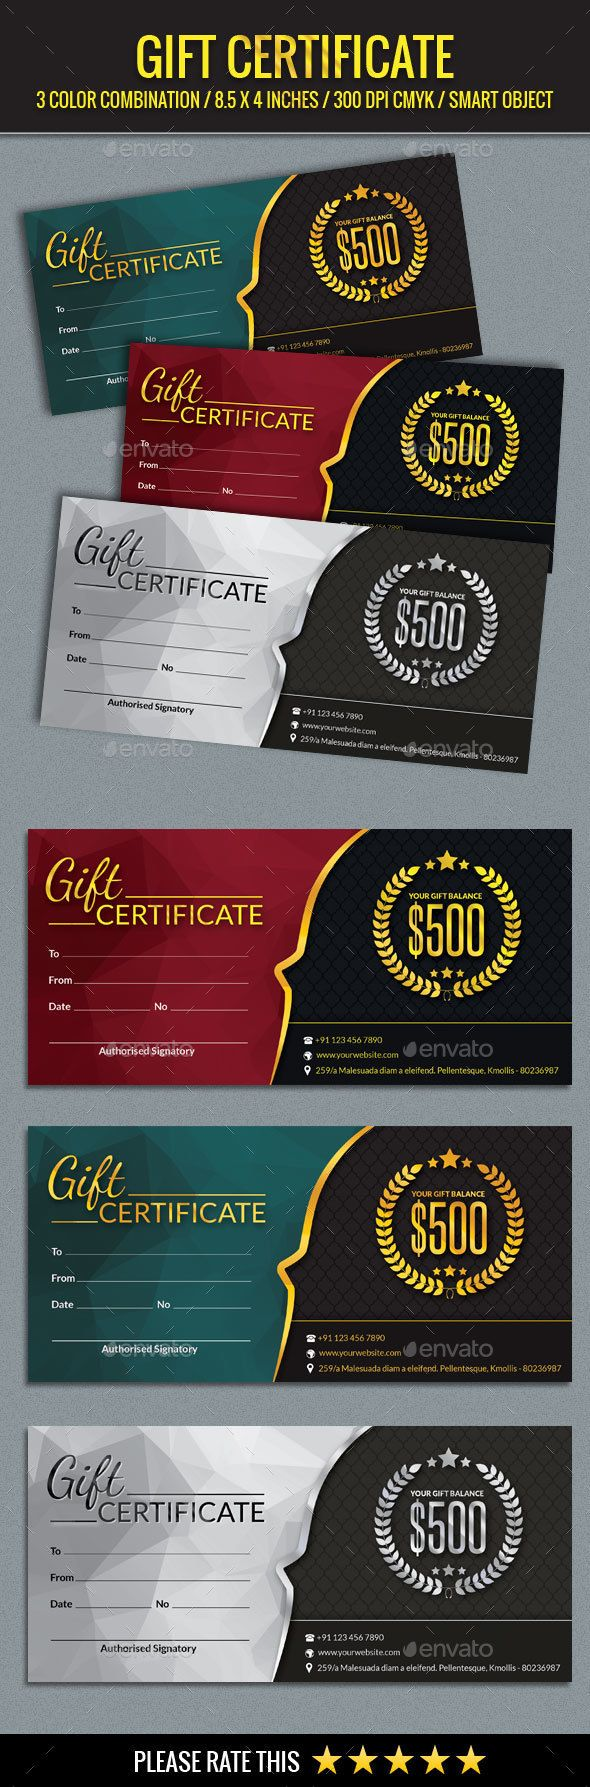 #Gift #Certificate #Template - Certificates #Stationery Download here: https://graphicriver.net/item/gift-certificate-template/14205174?ref=alena994